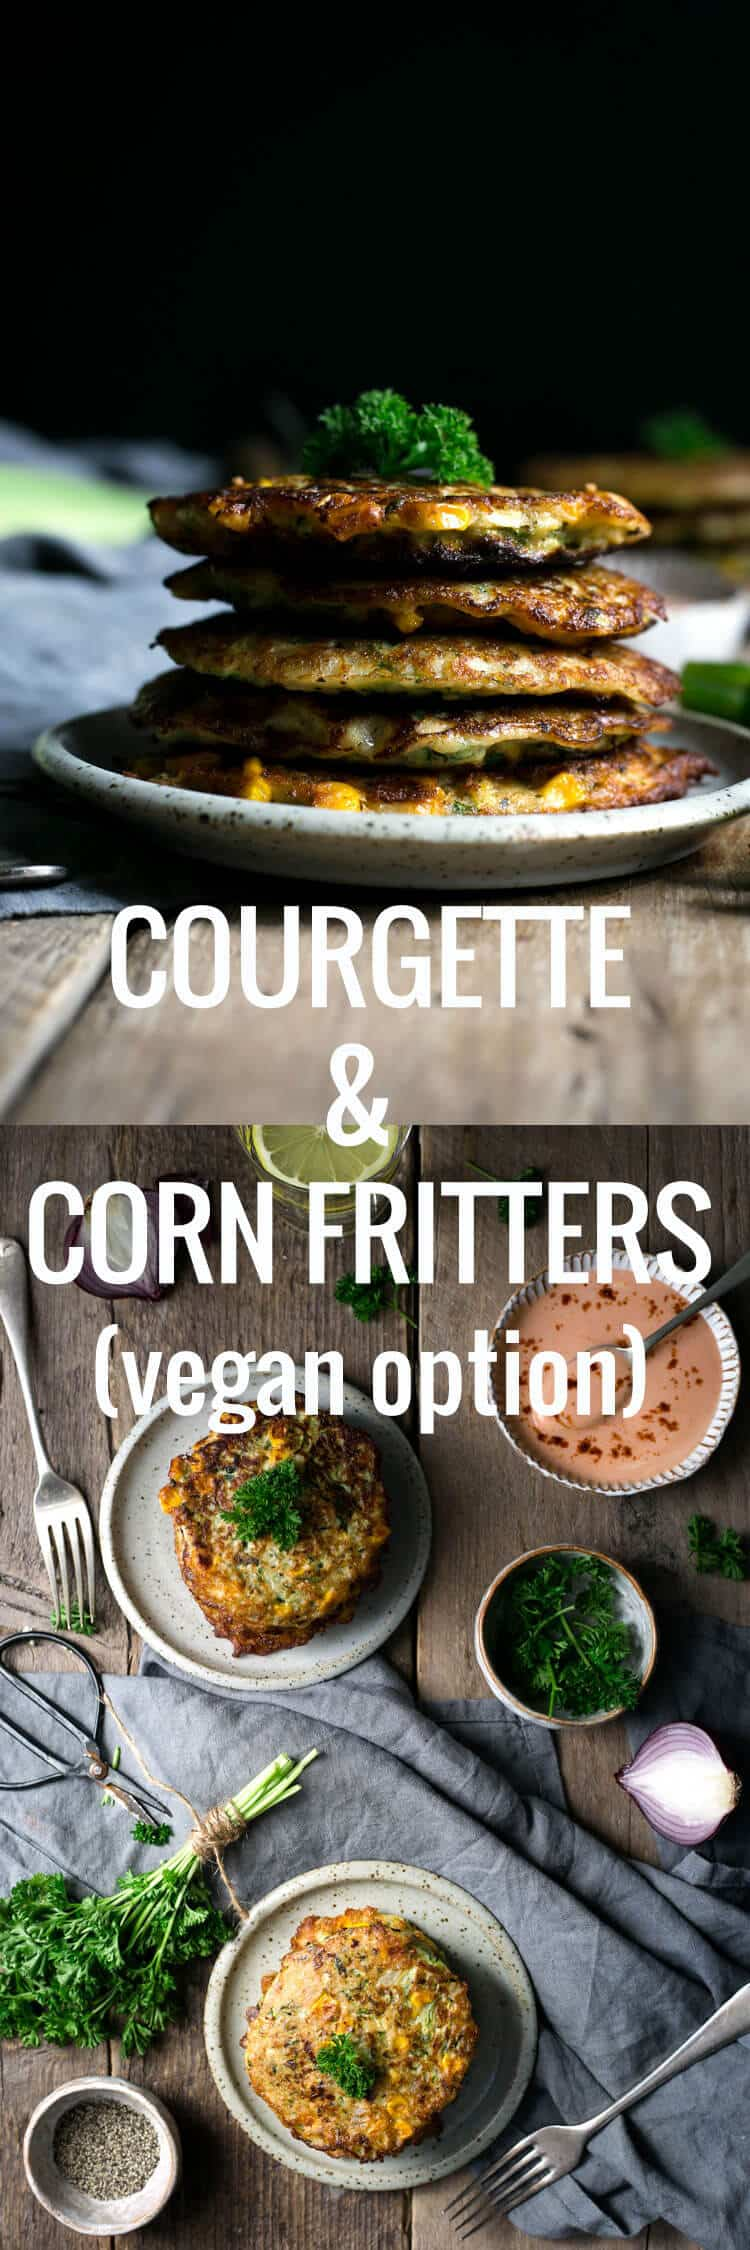 Delicious and easy recipe for courgette and corn fritters | via @annabanana.co